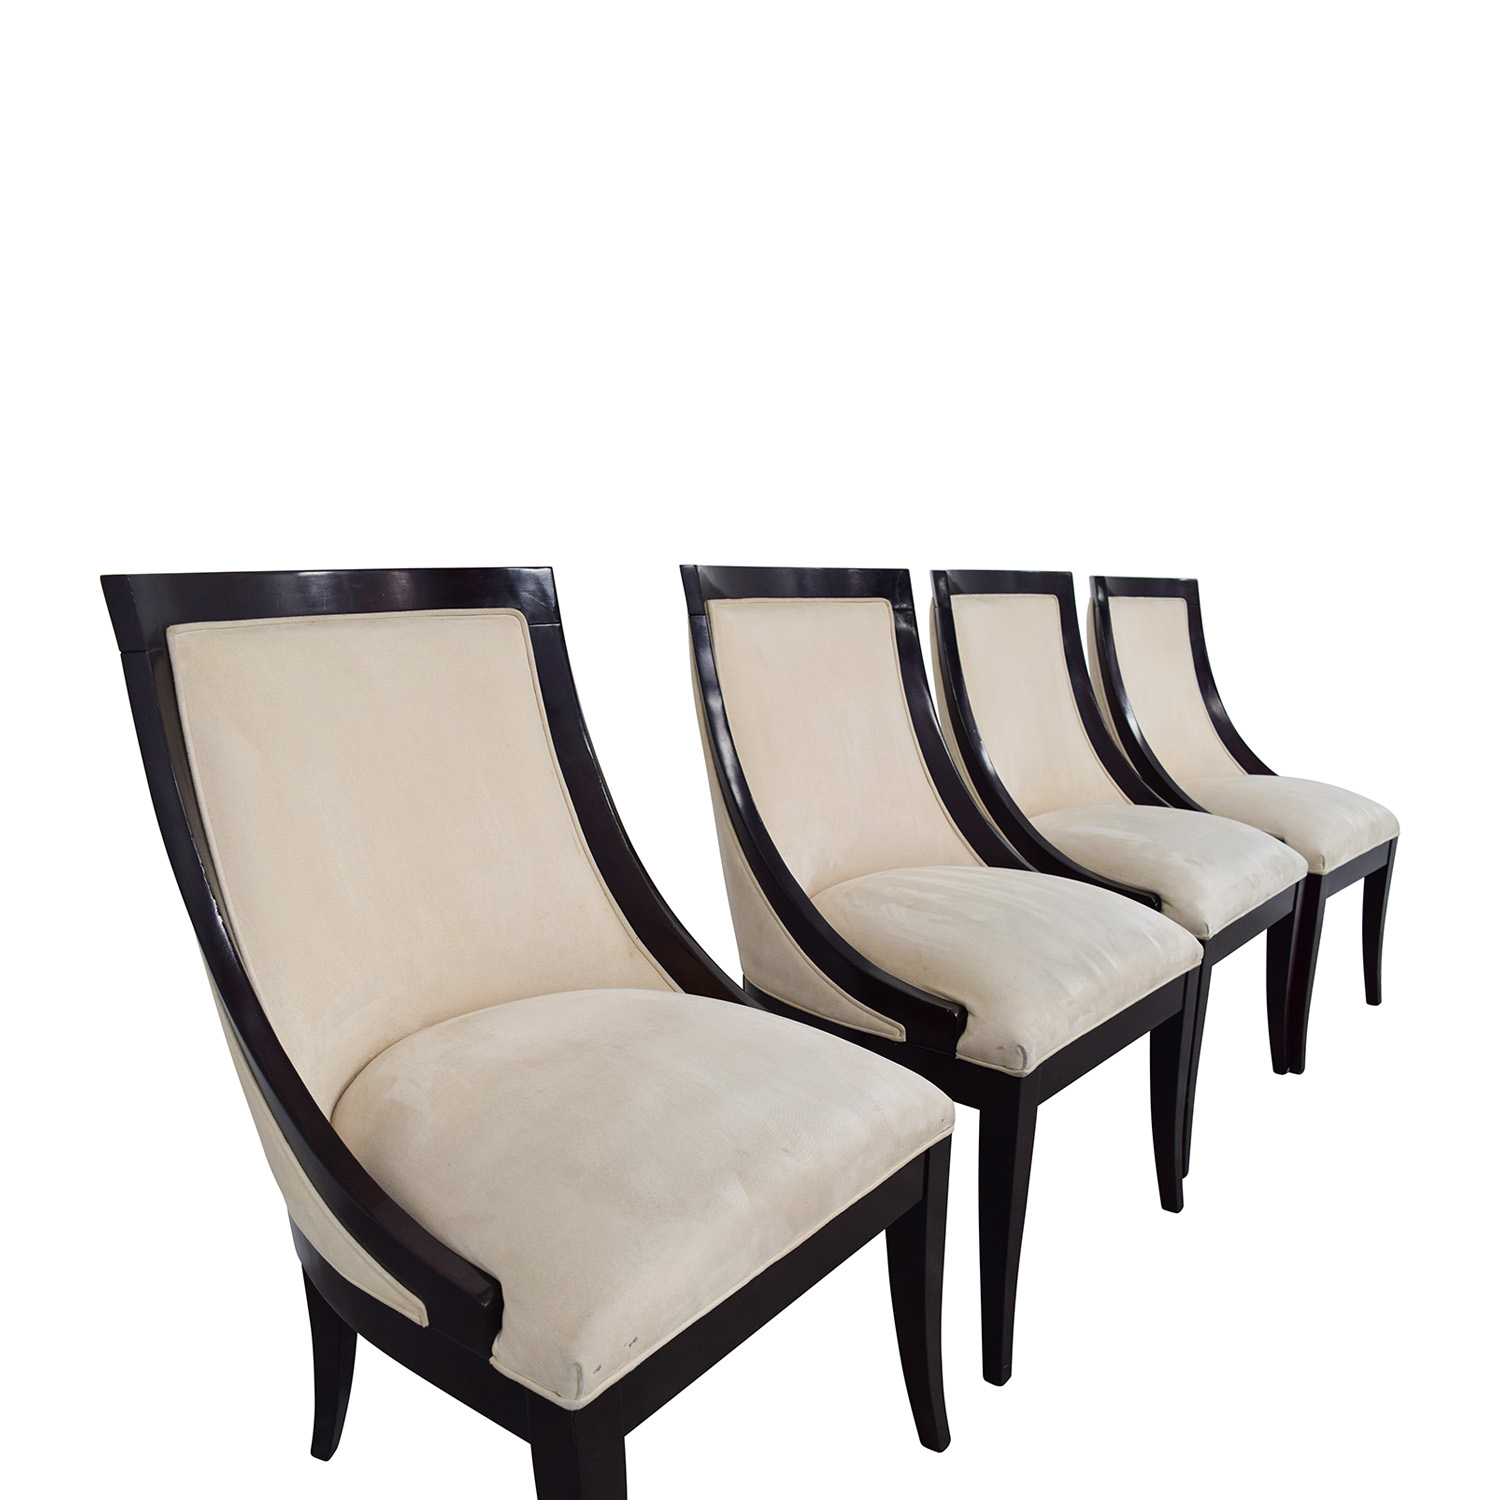 Cheap Antique Furniture For Sale Online: Restoration Hardware Restoration Hardware Cream